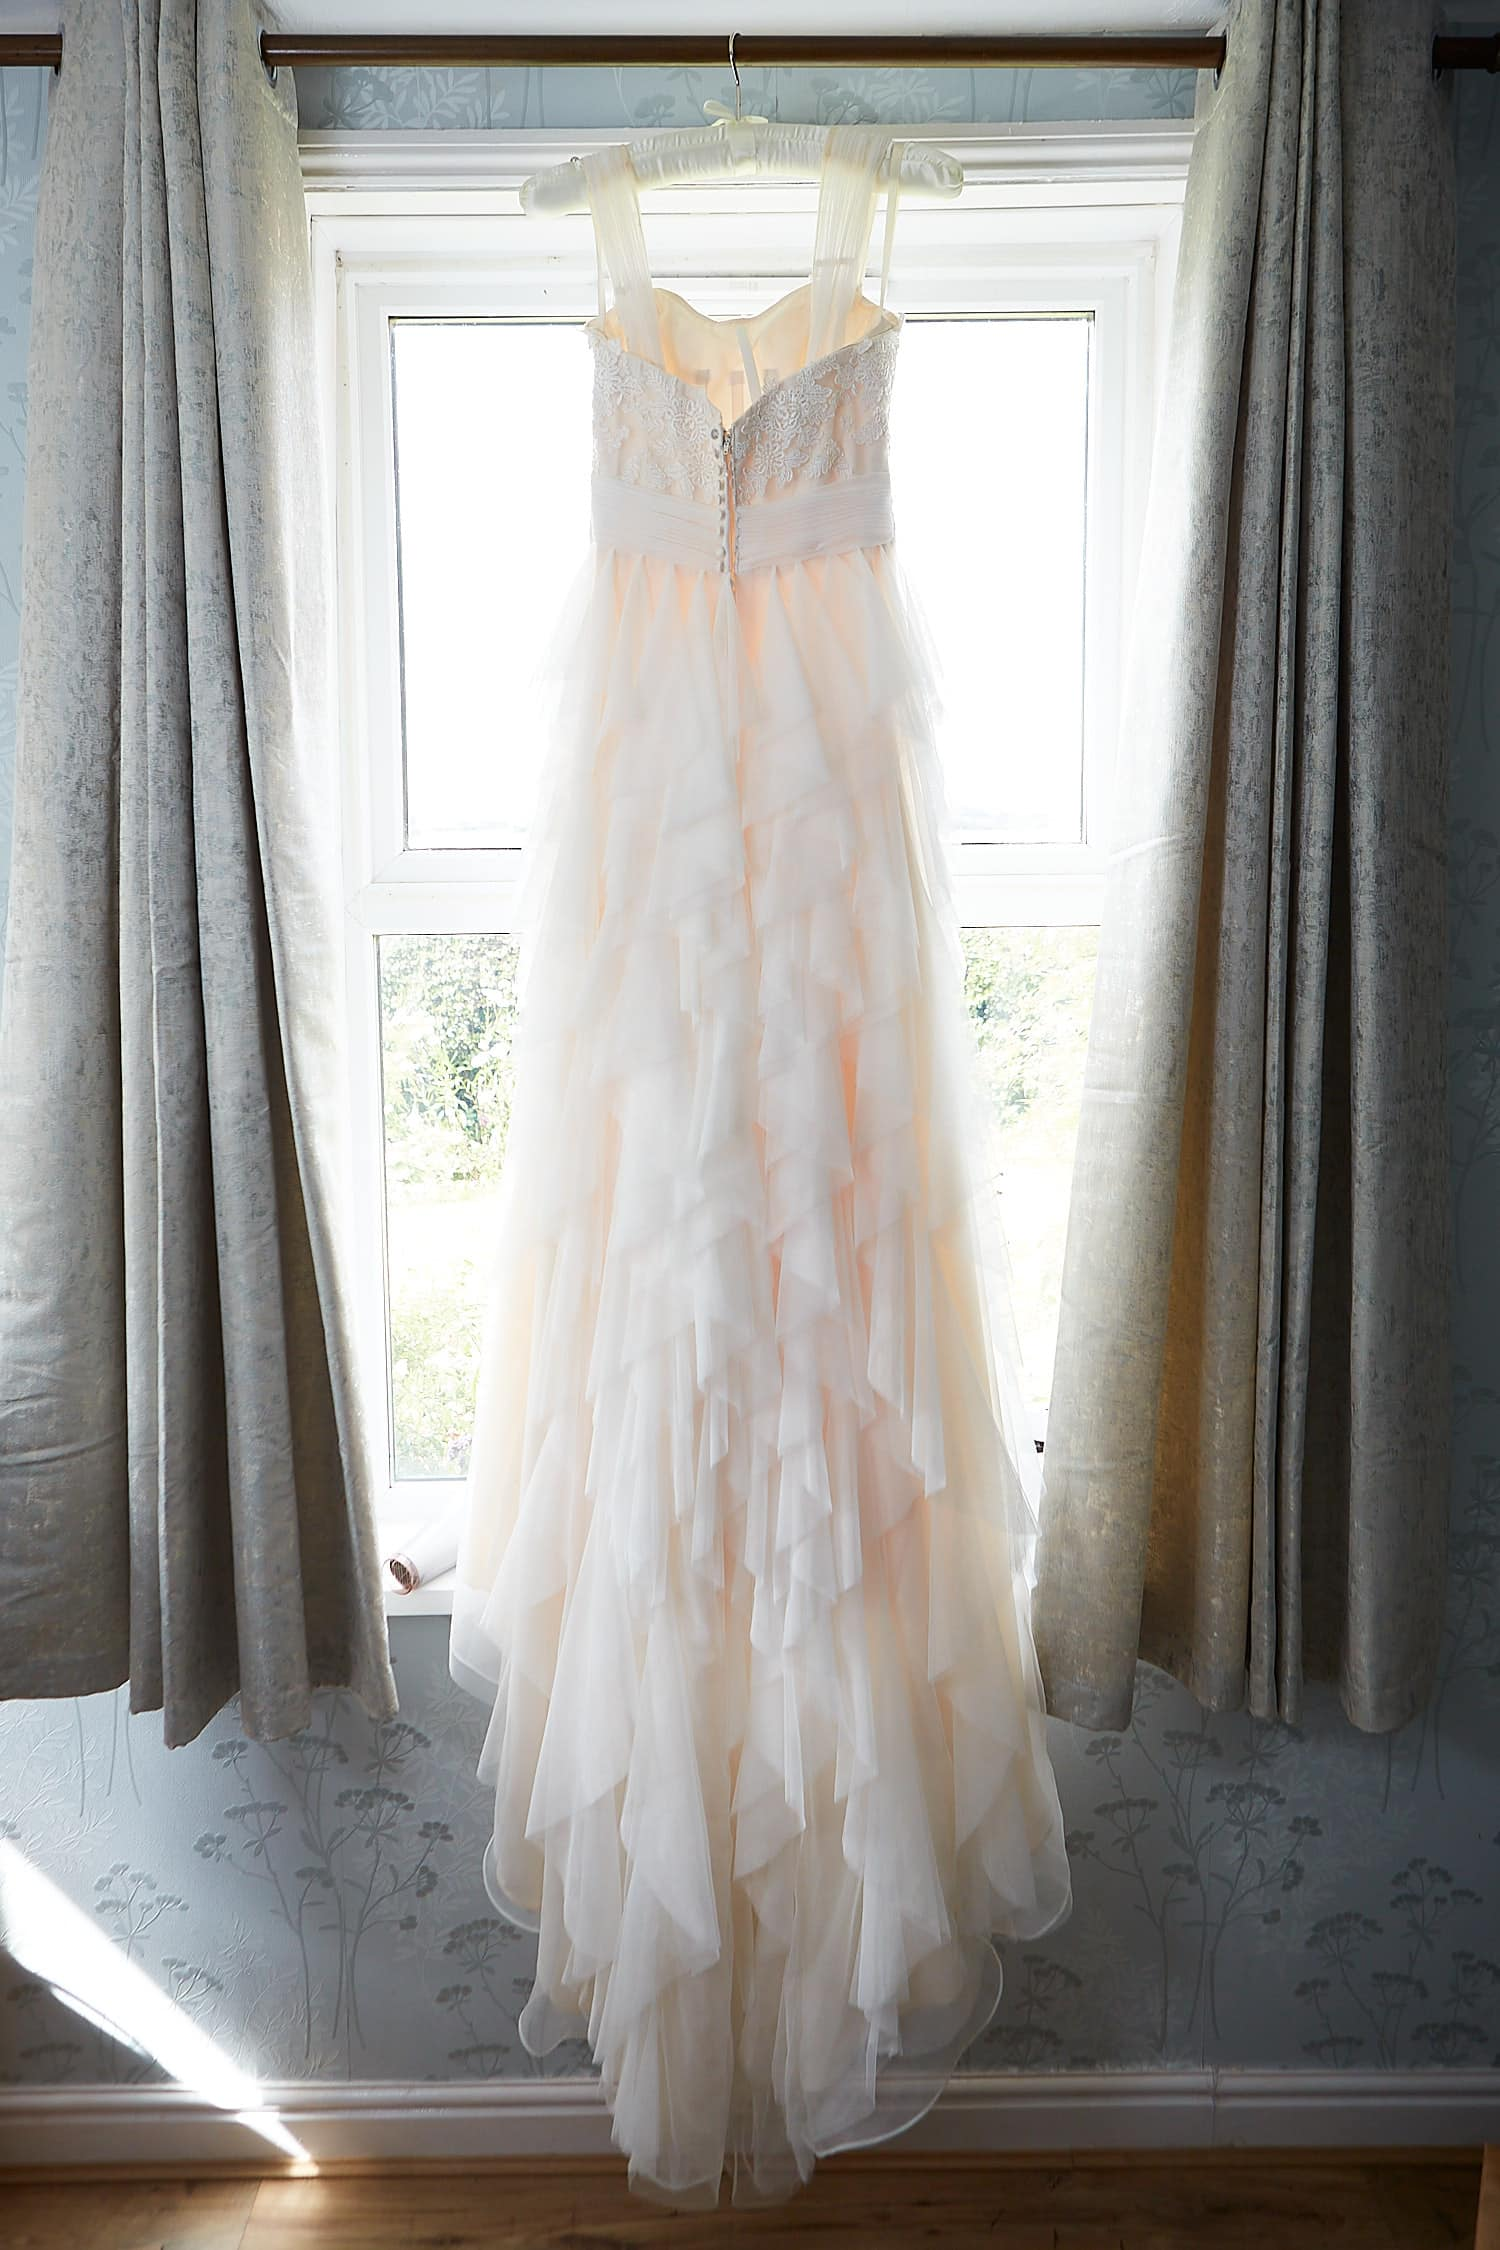 A wedding dress hanging in the family home on the wedding day